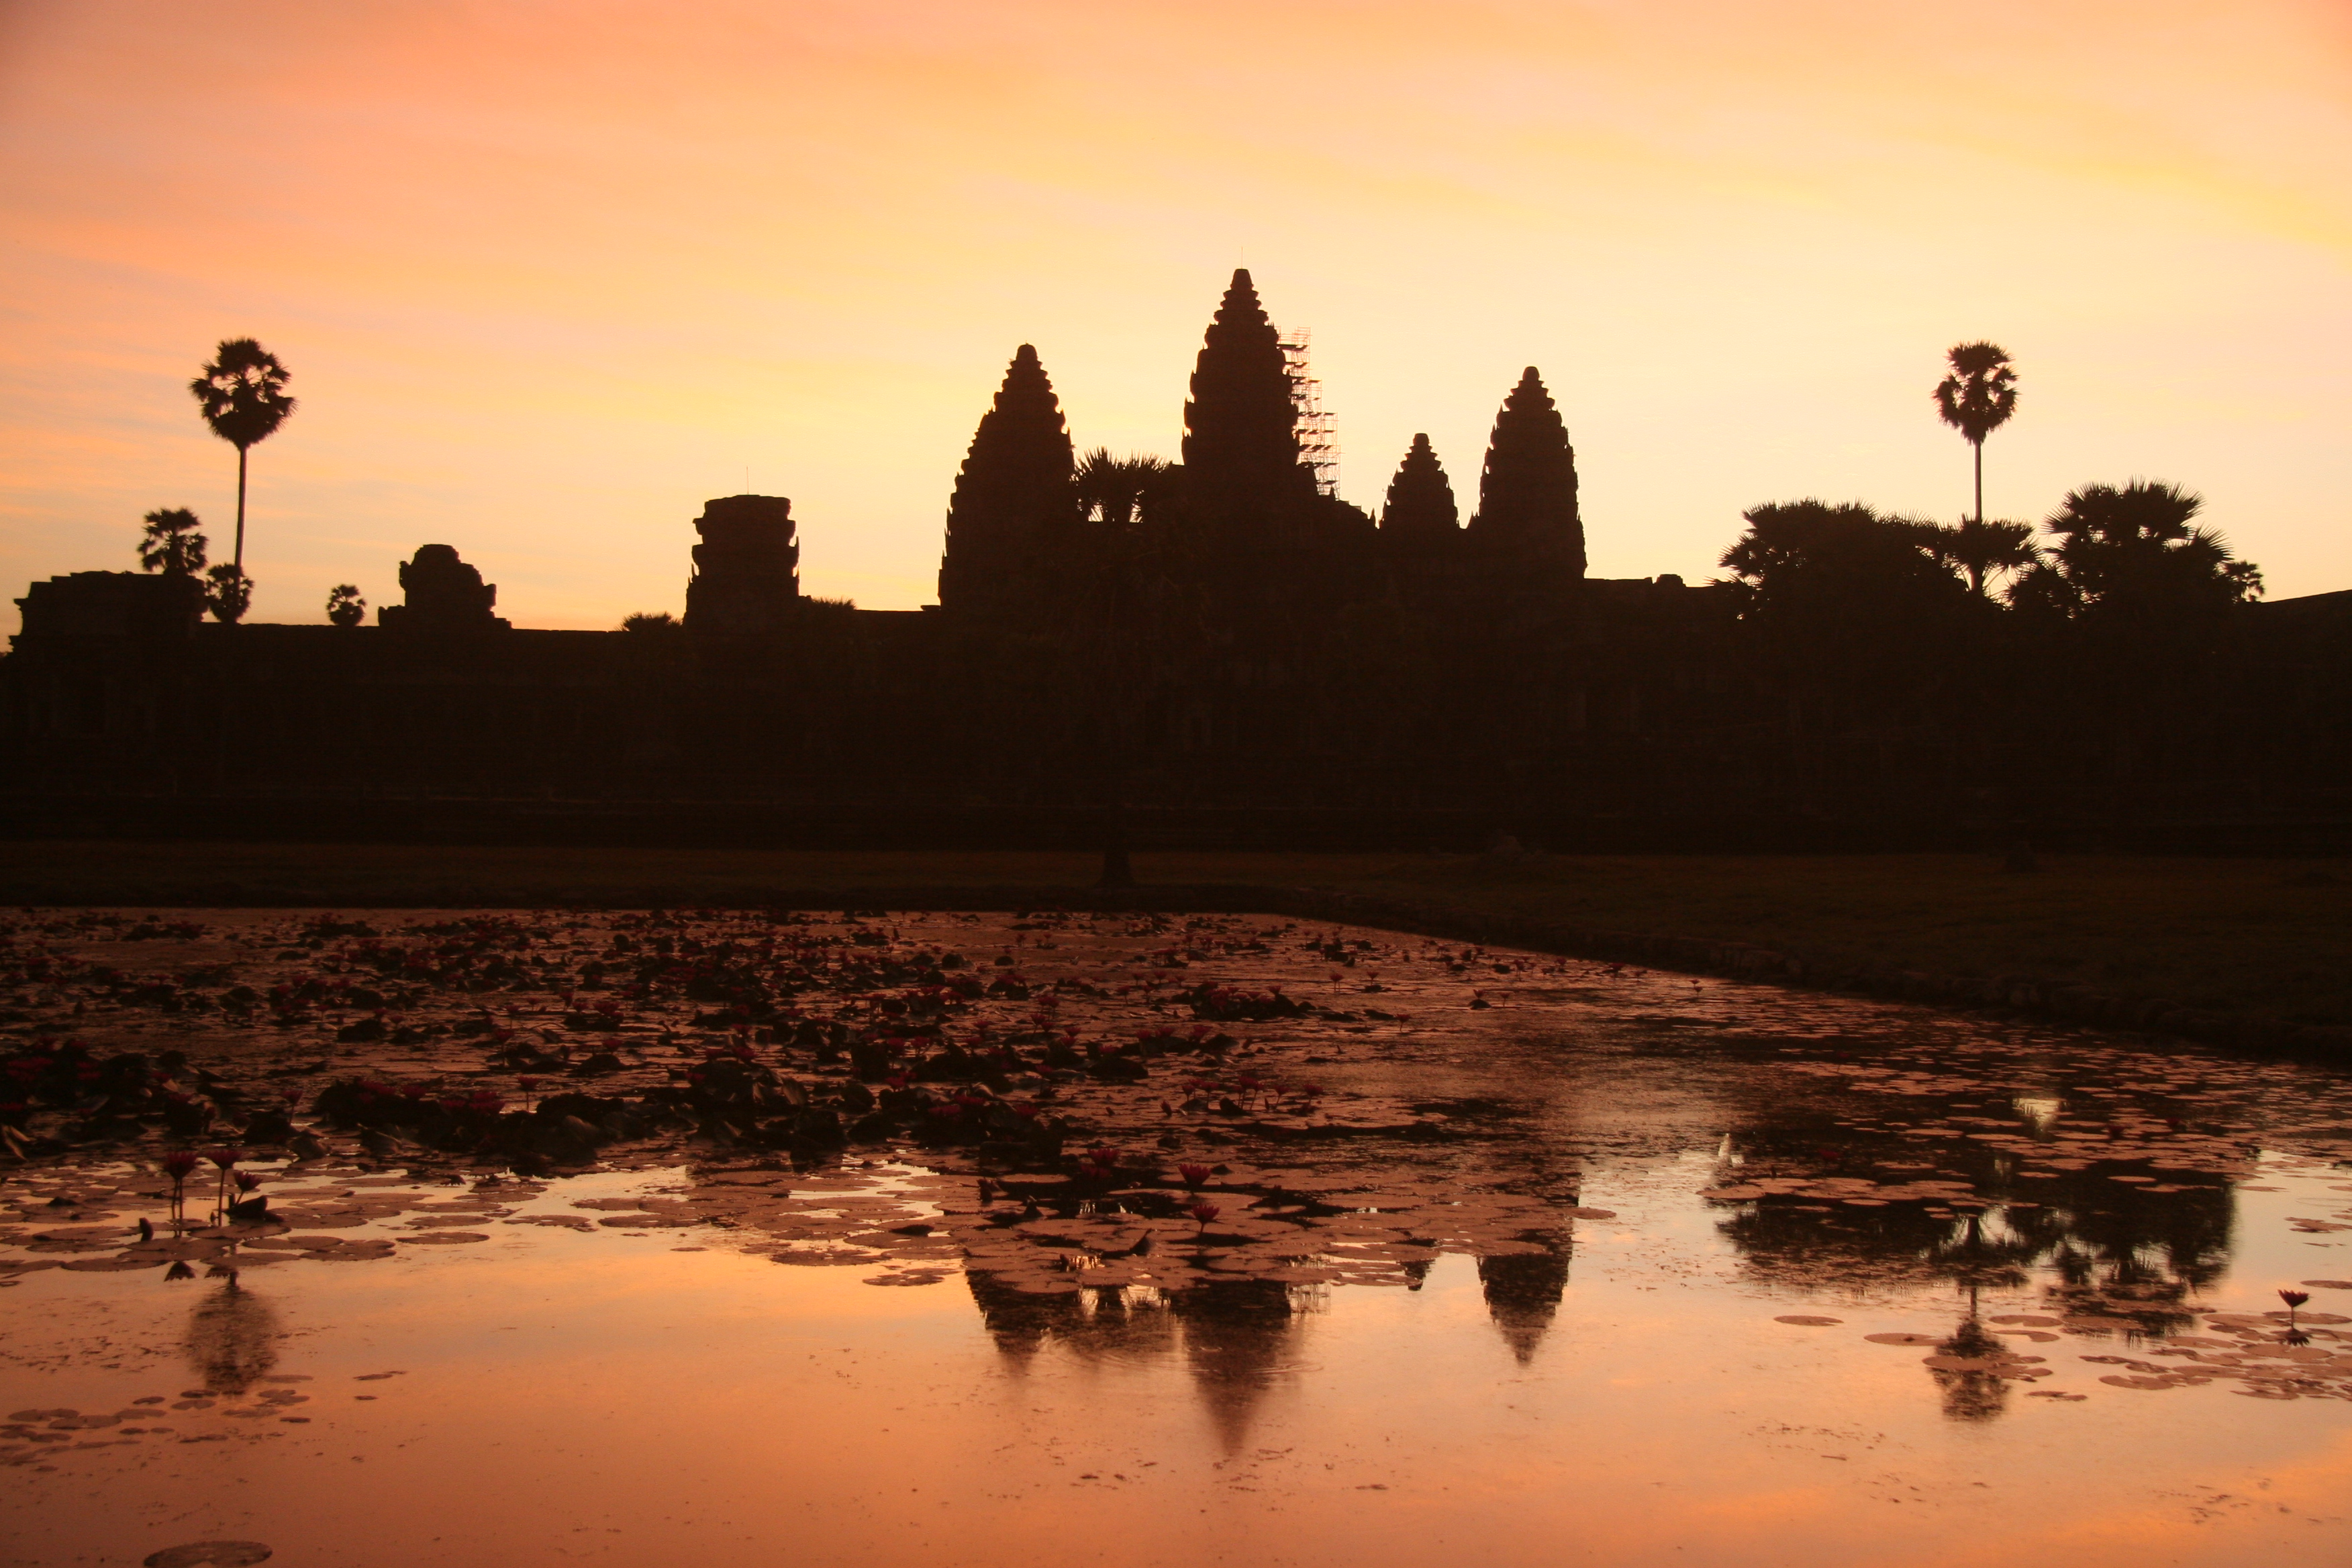 Travel photos from Cambodia and Thailand